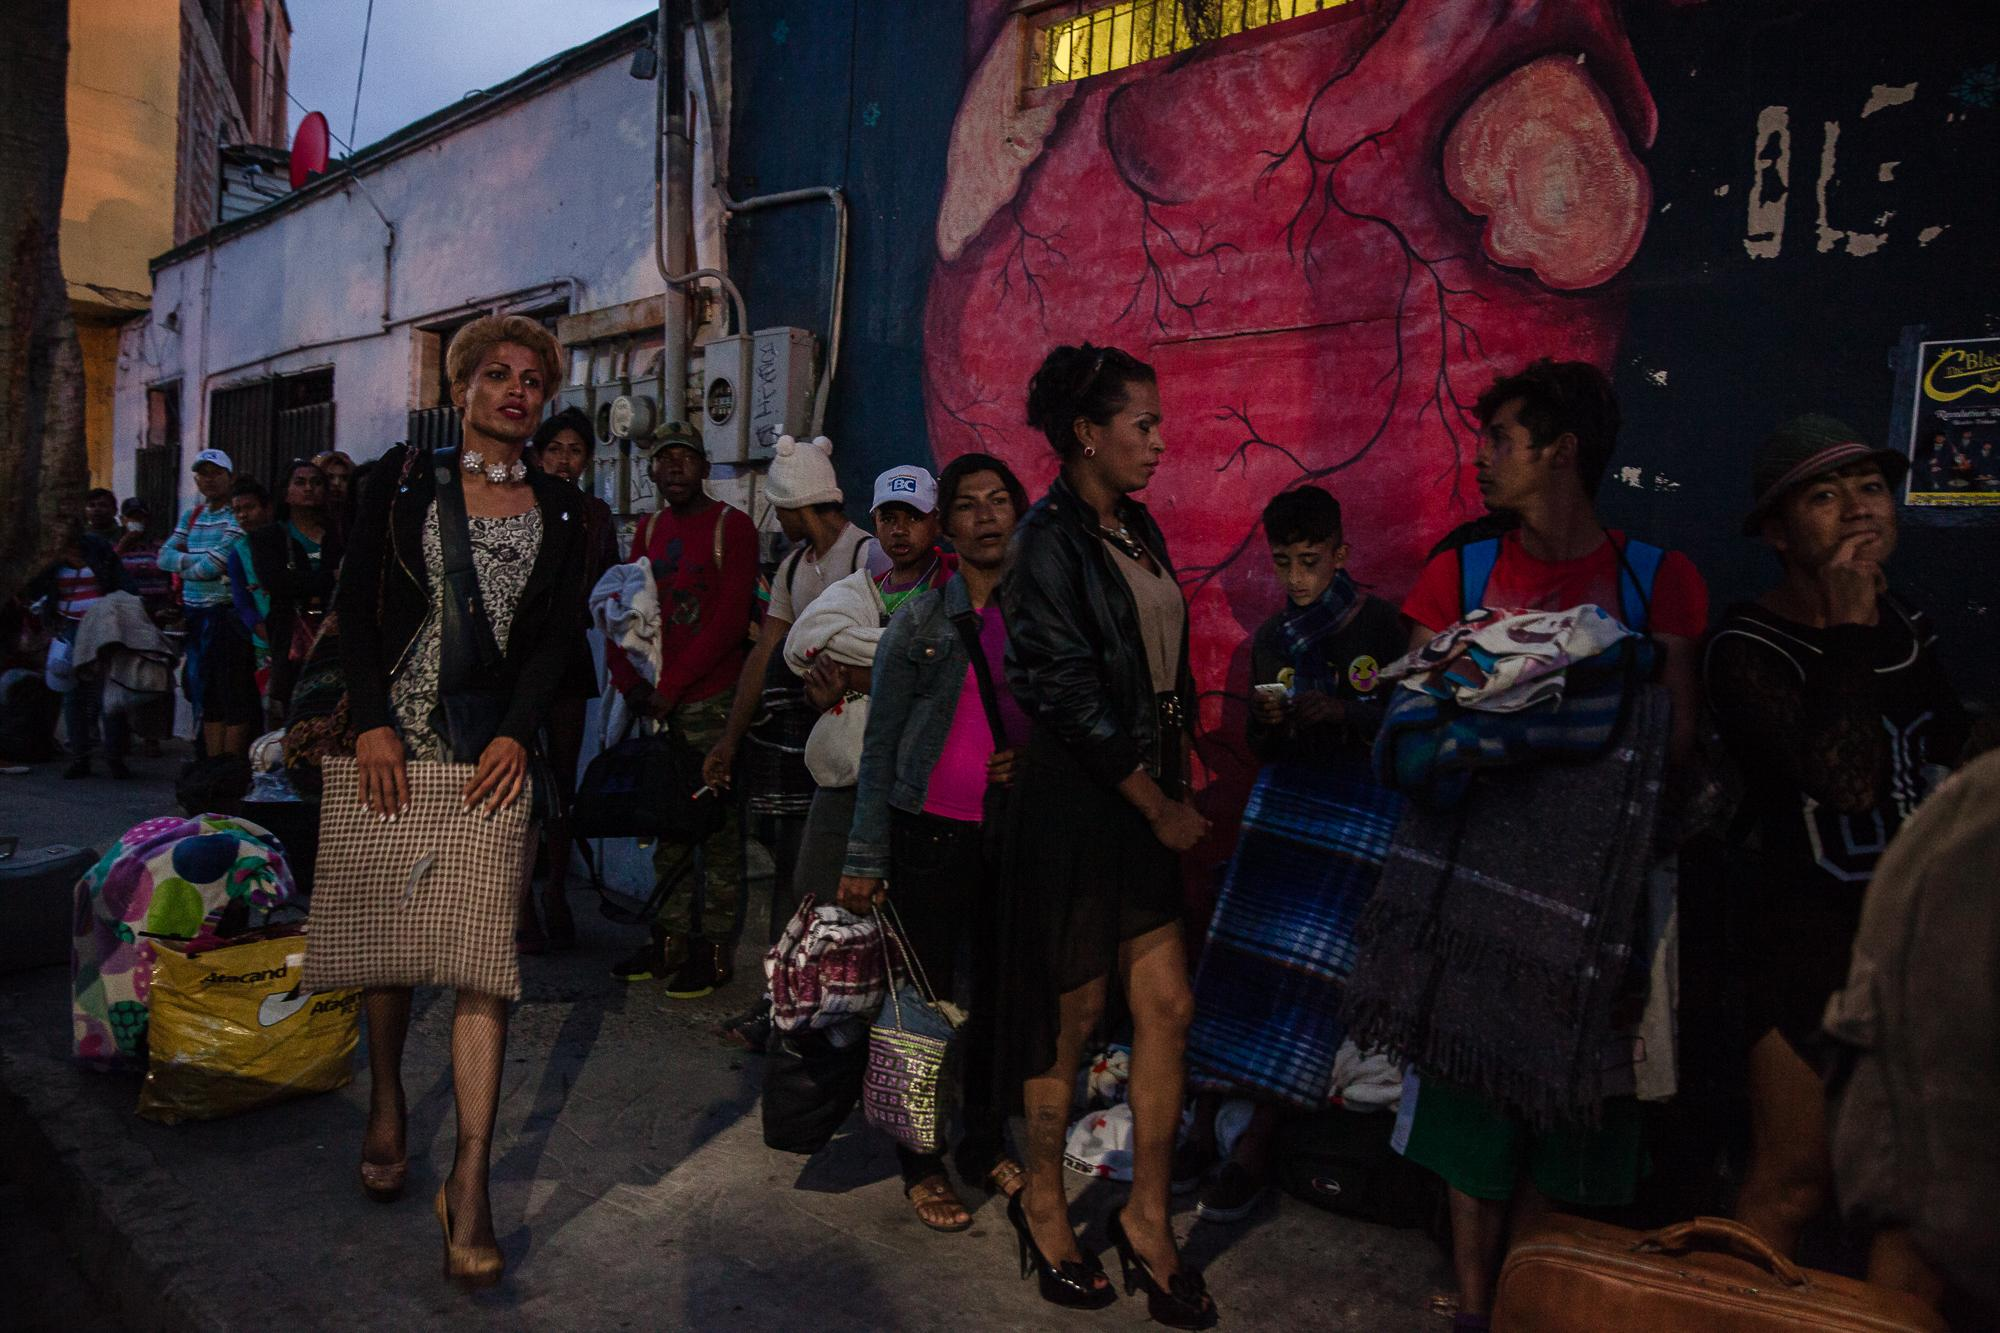 Fourth bus arrives in front of Juventud 2000 shelter in Tijuana, MX, on April 26, 2018. More than 30 LGBTQ people traveled with the caravan including several trans women.